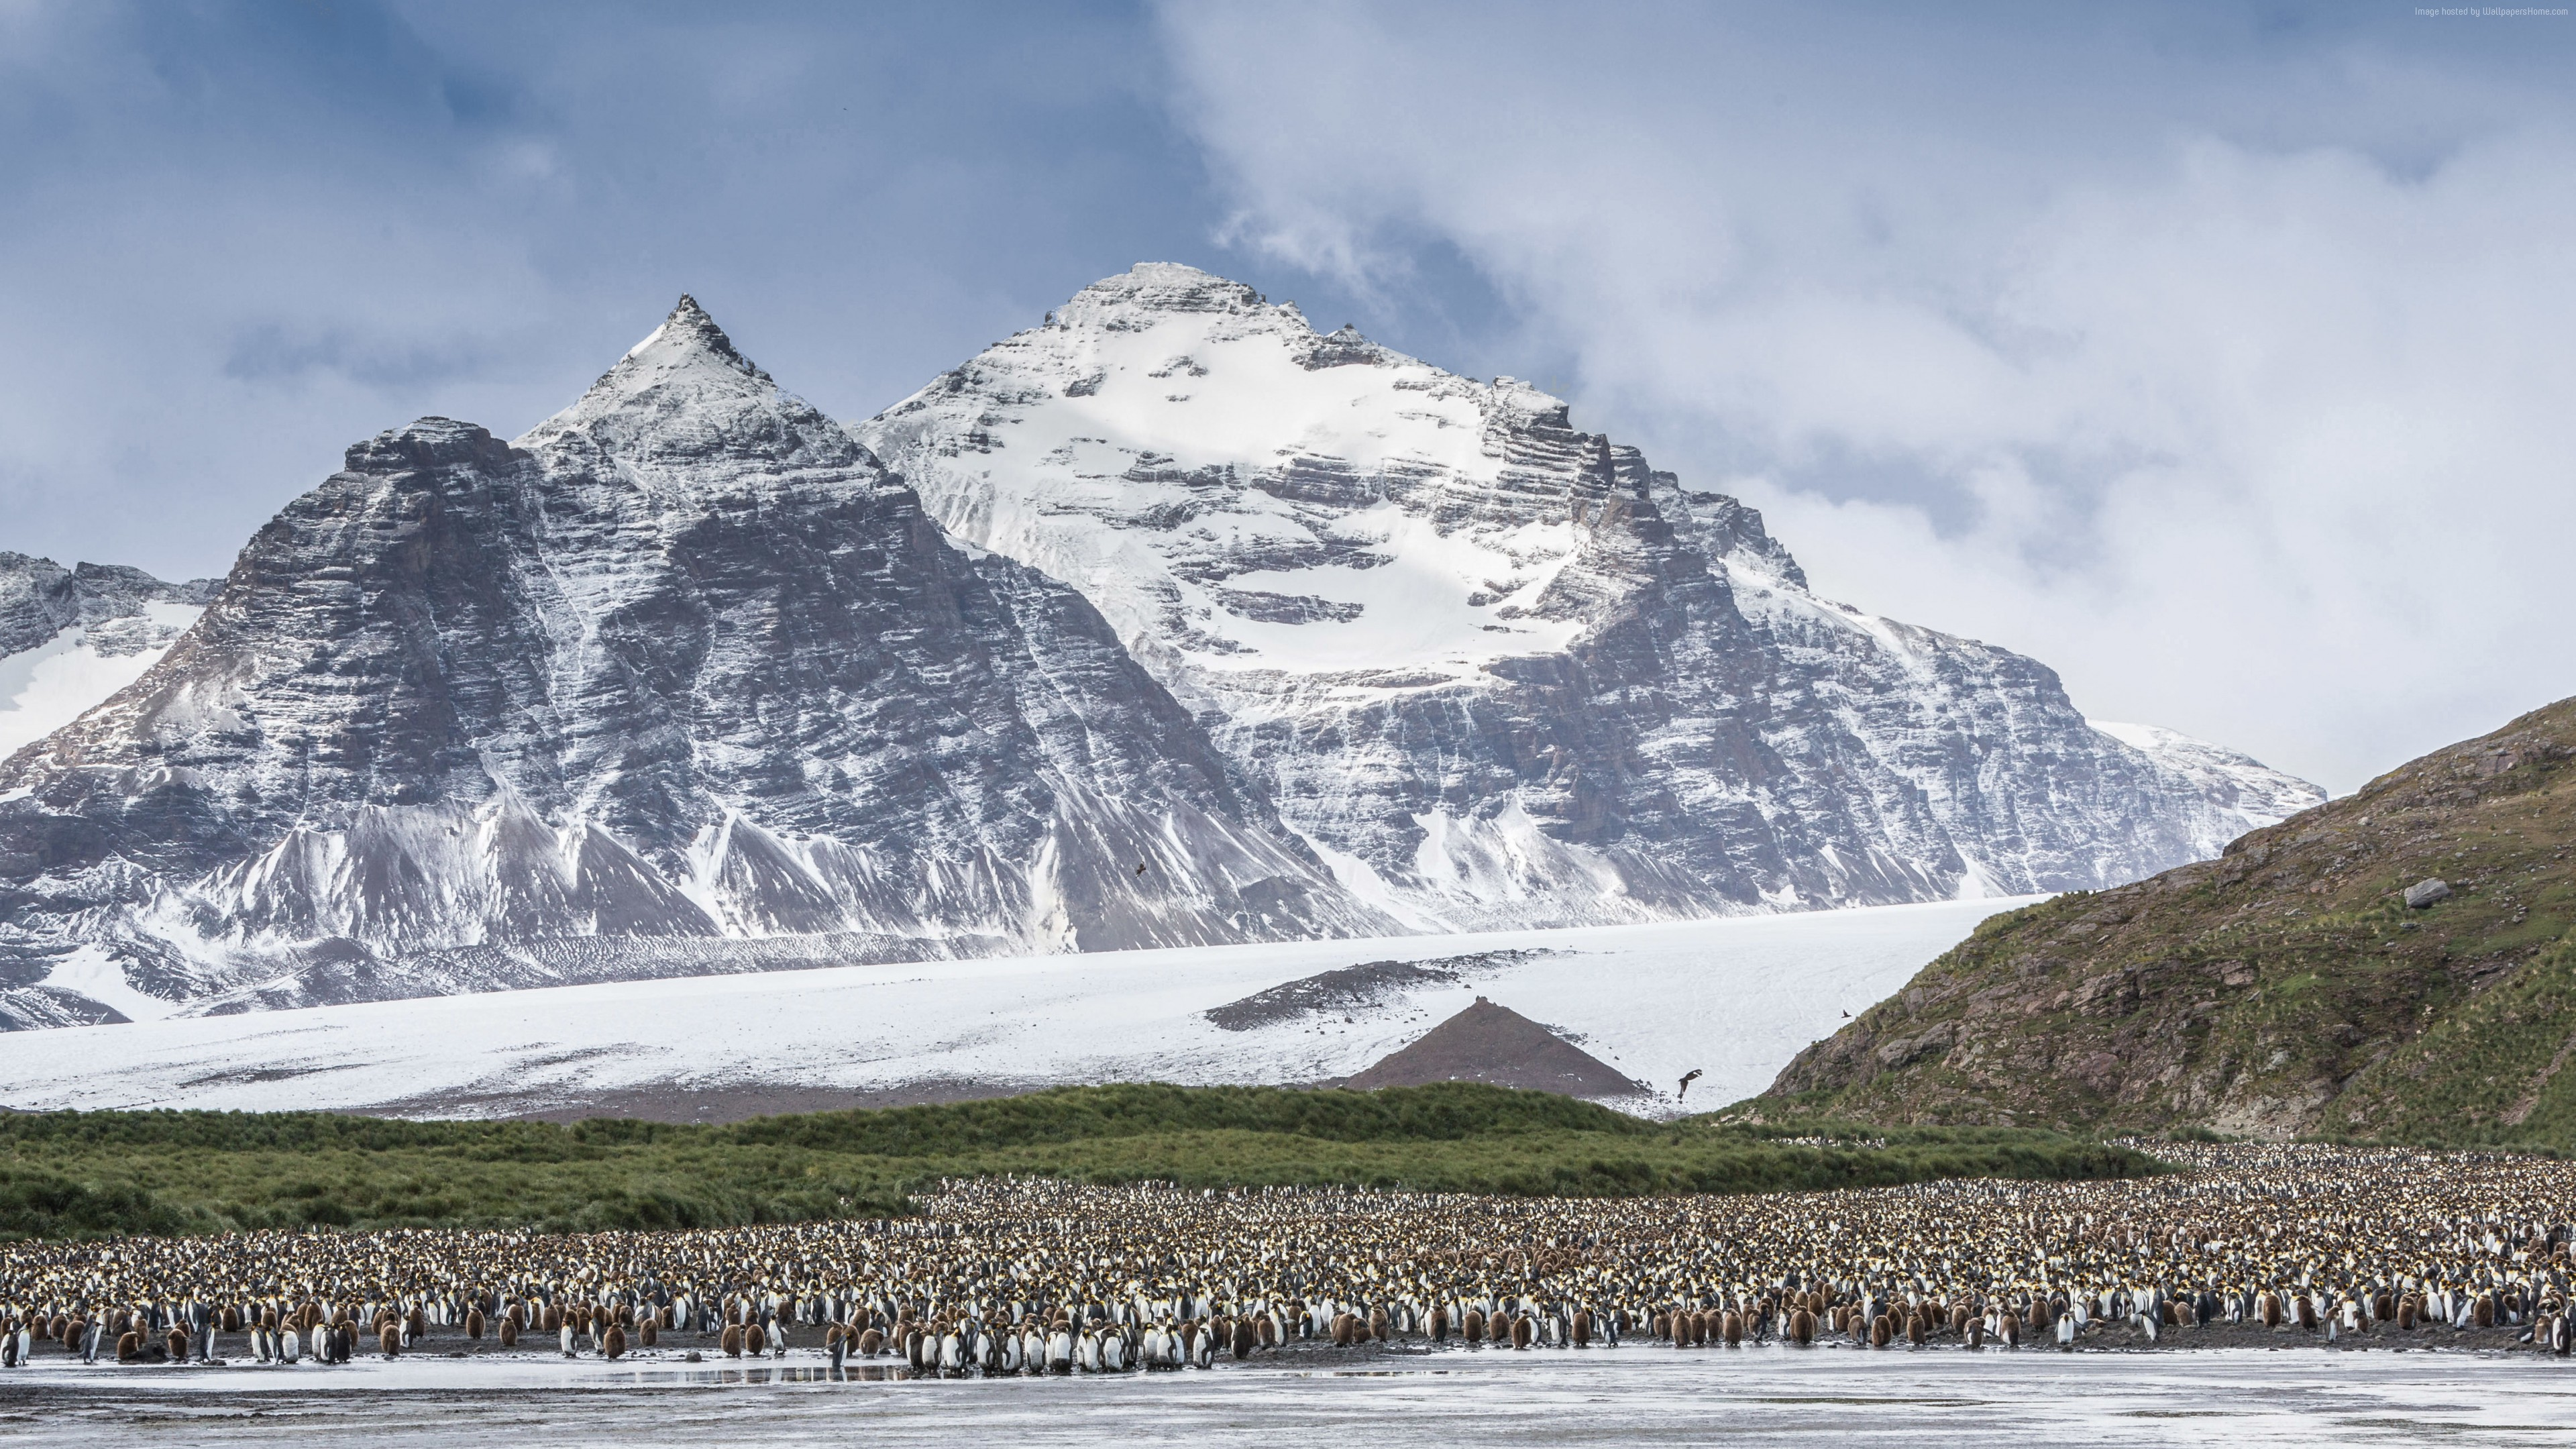 Wallpaper Antarctica, mountains, penguins, 5k, Travel